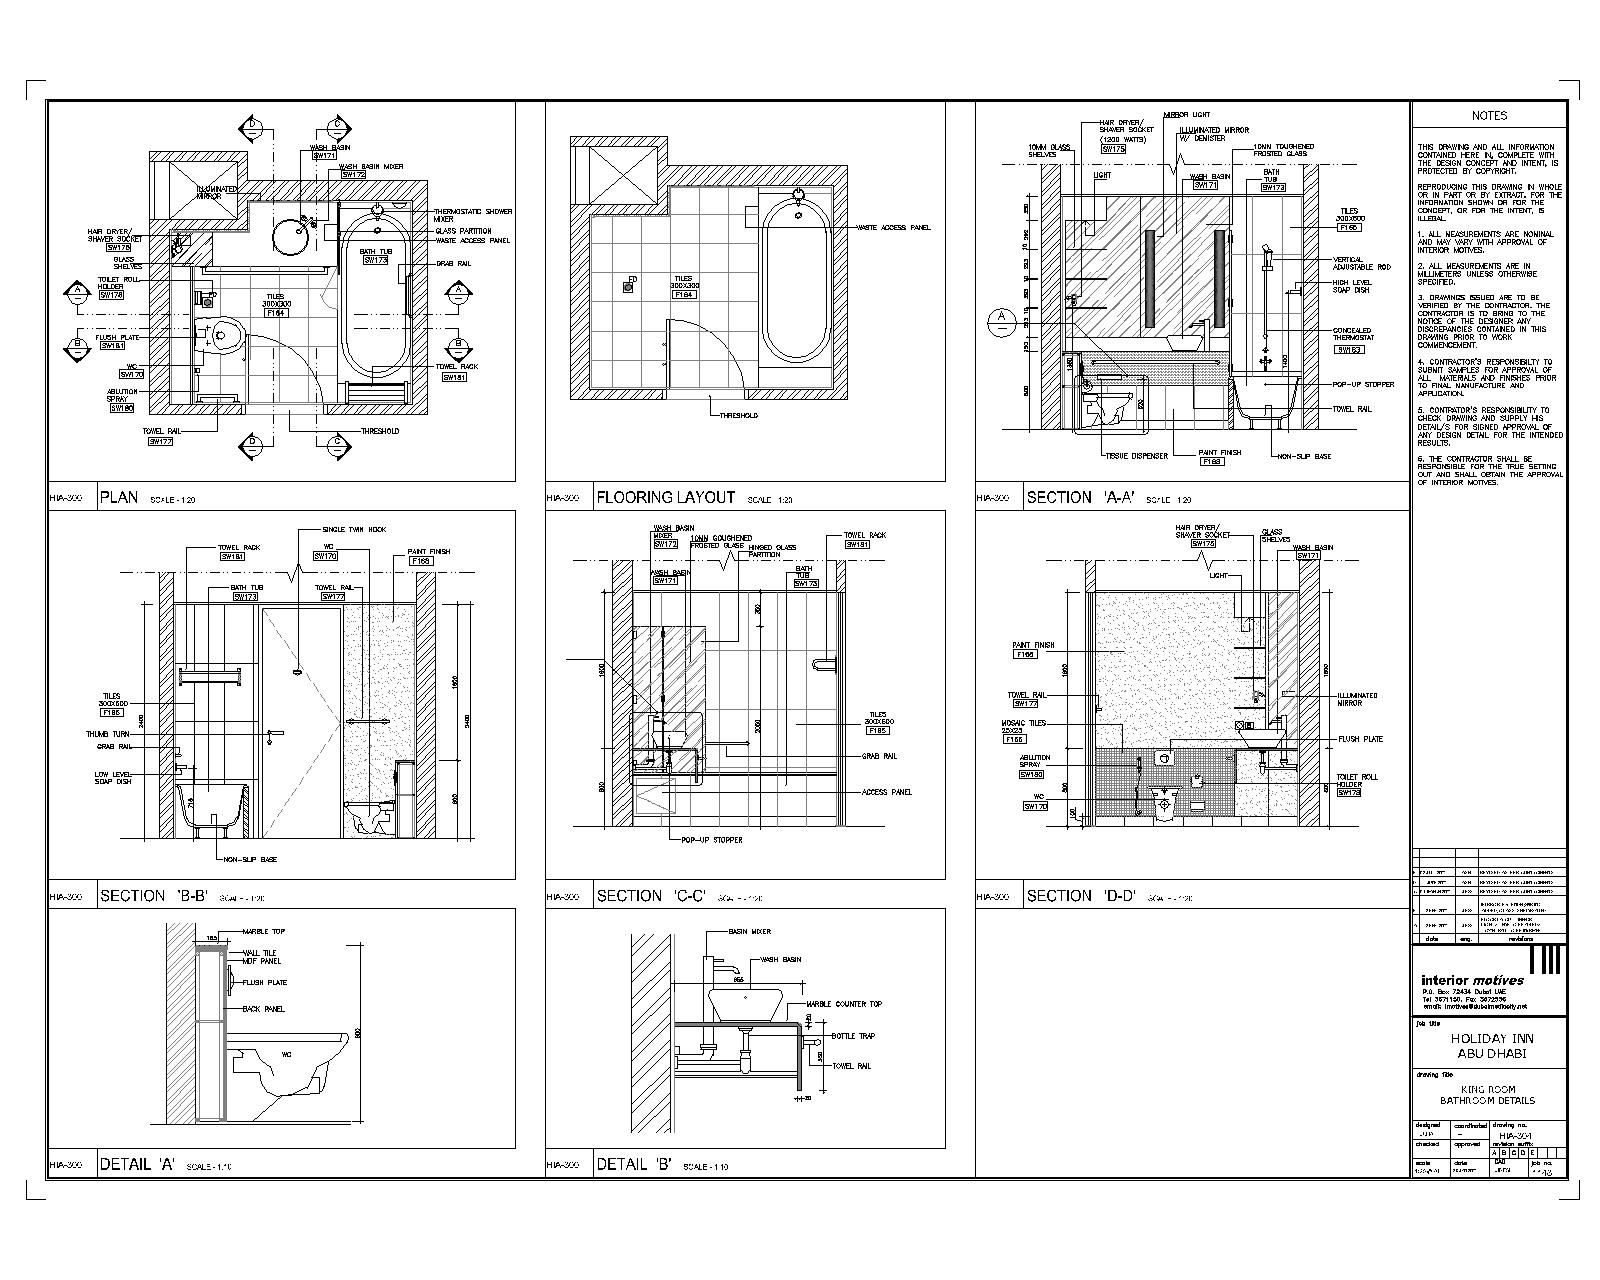 Autocad drawings detail by ashik ahammed at coroflot for Cad house design